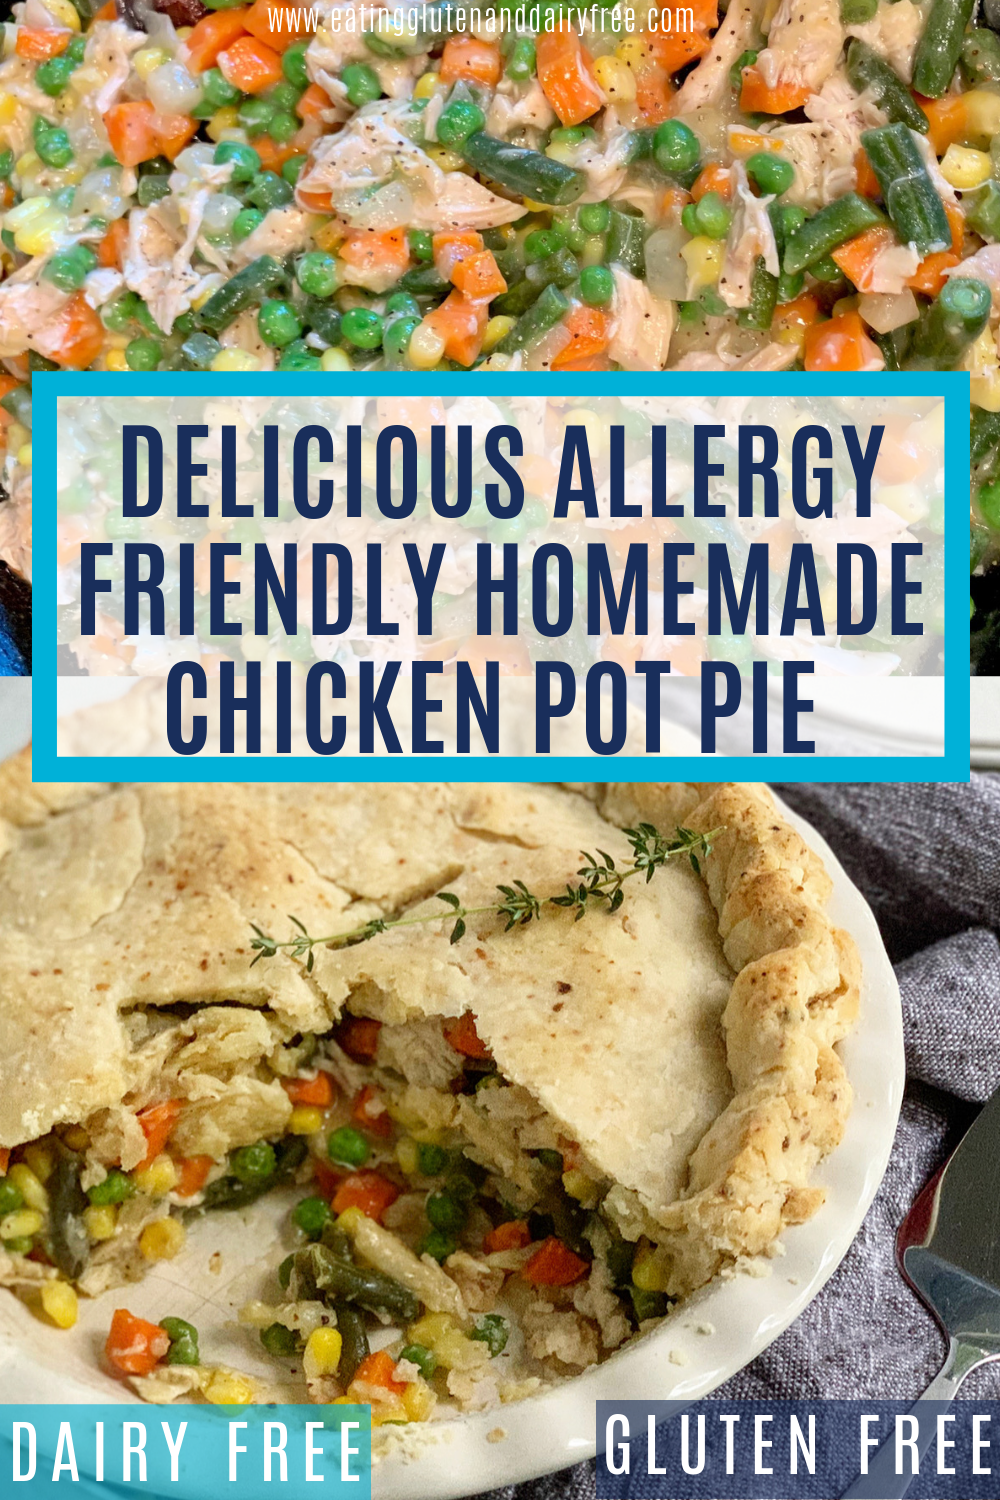 a chicken pot pie with a  large slice missing